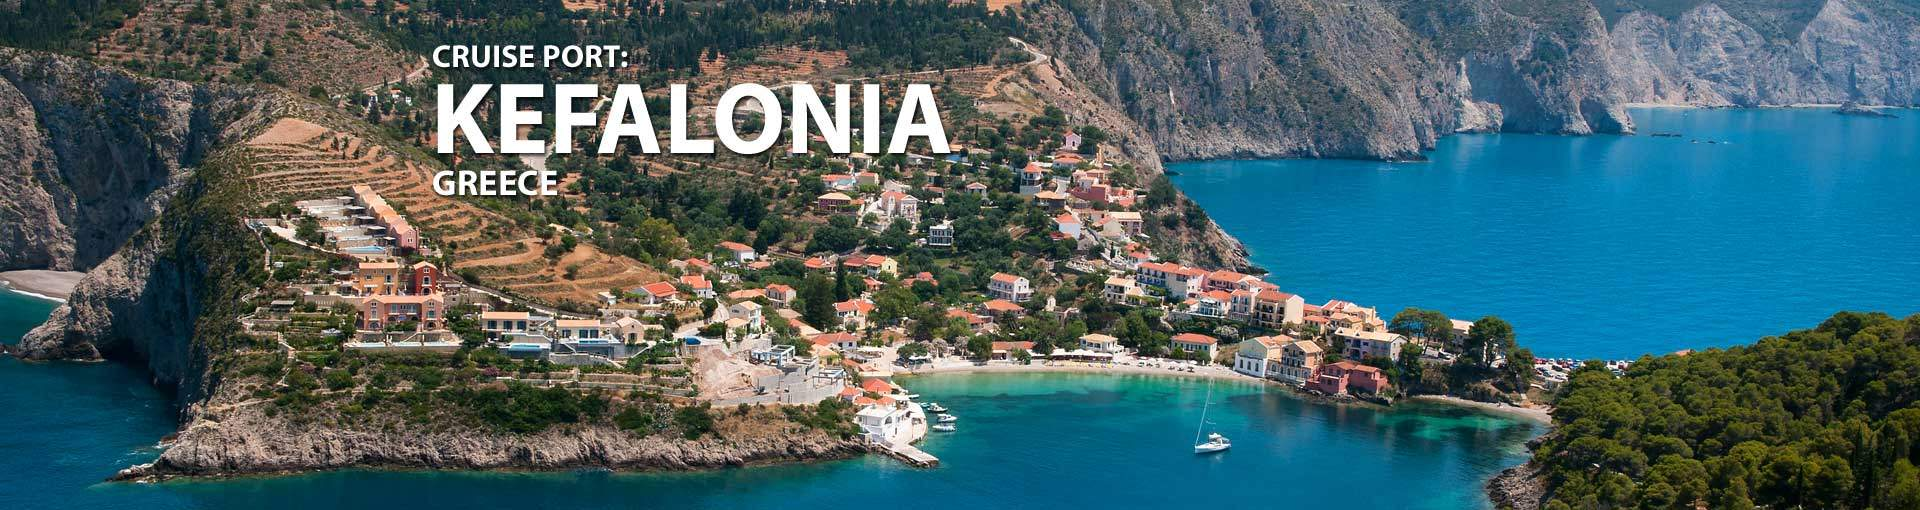 Cruises to Kefalonia, Greece